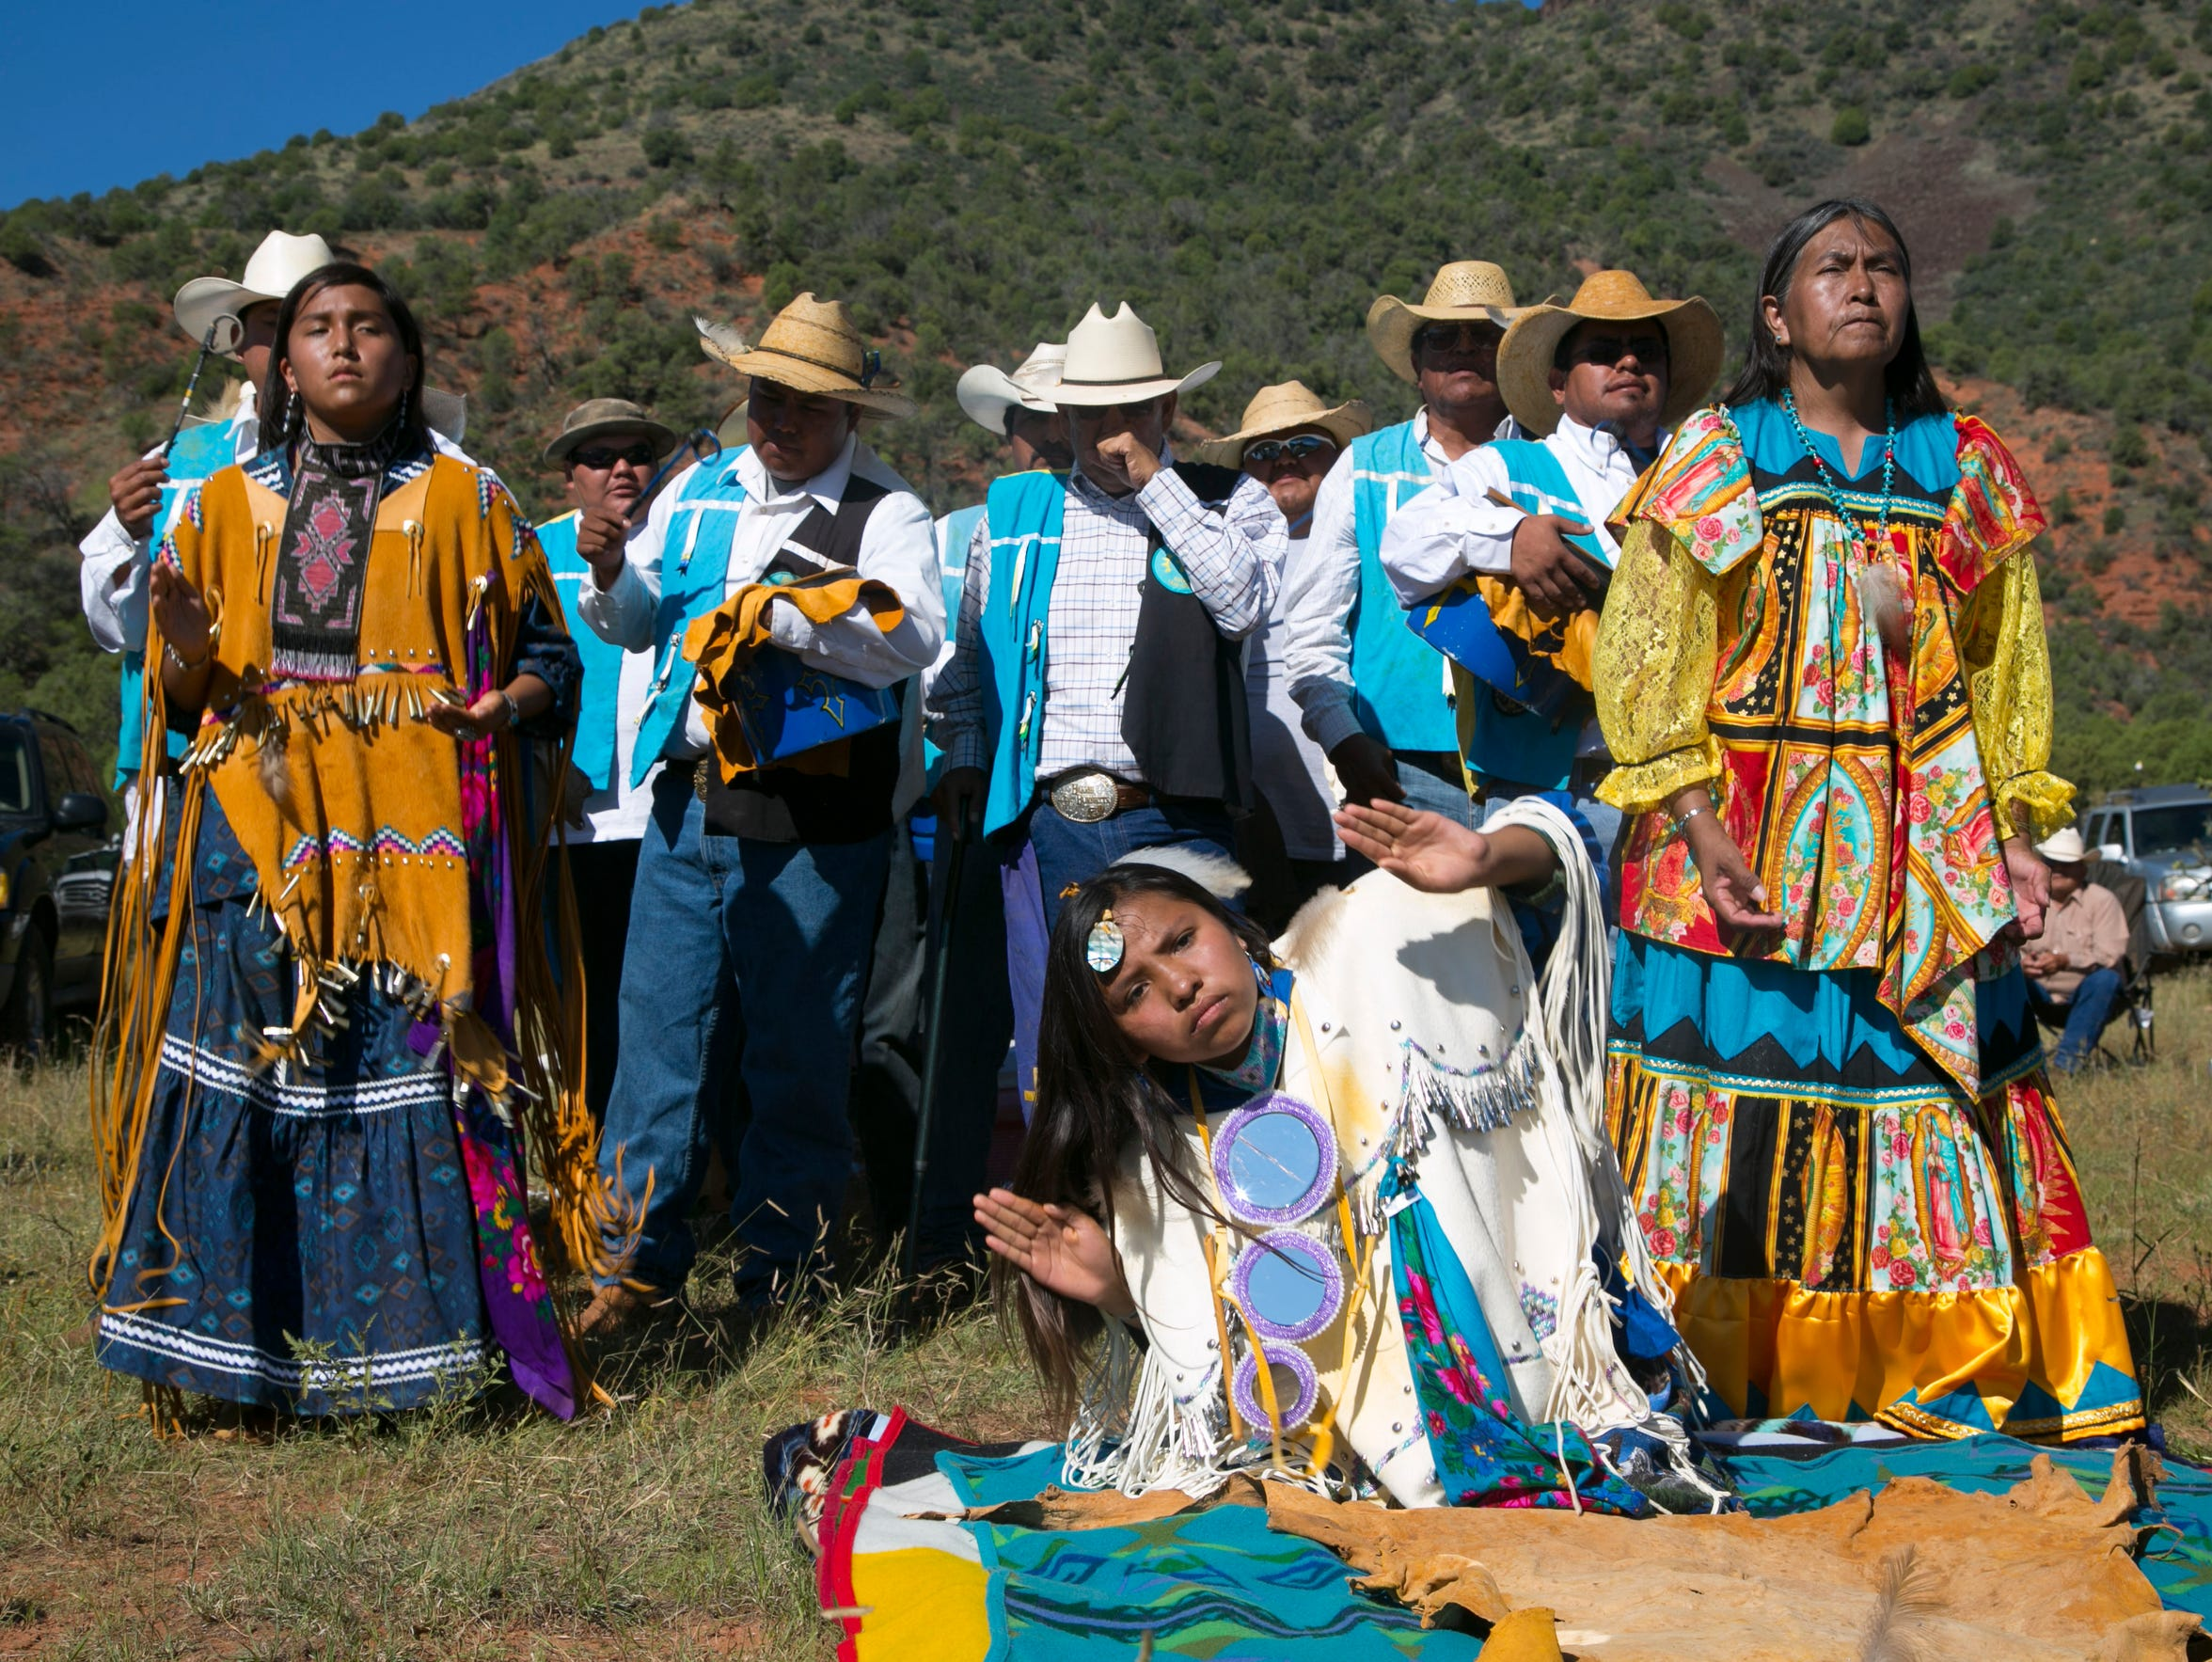 the navajo culture and healthcare The mexicans and the navajo  land, and healthcare and free things that natives get you should rewrite this article with facts instead of lies  navajo culture.